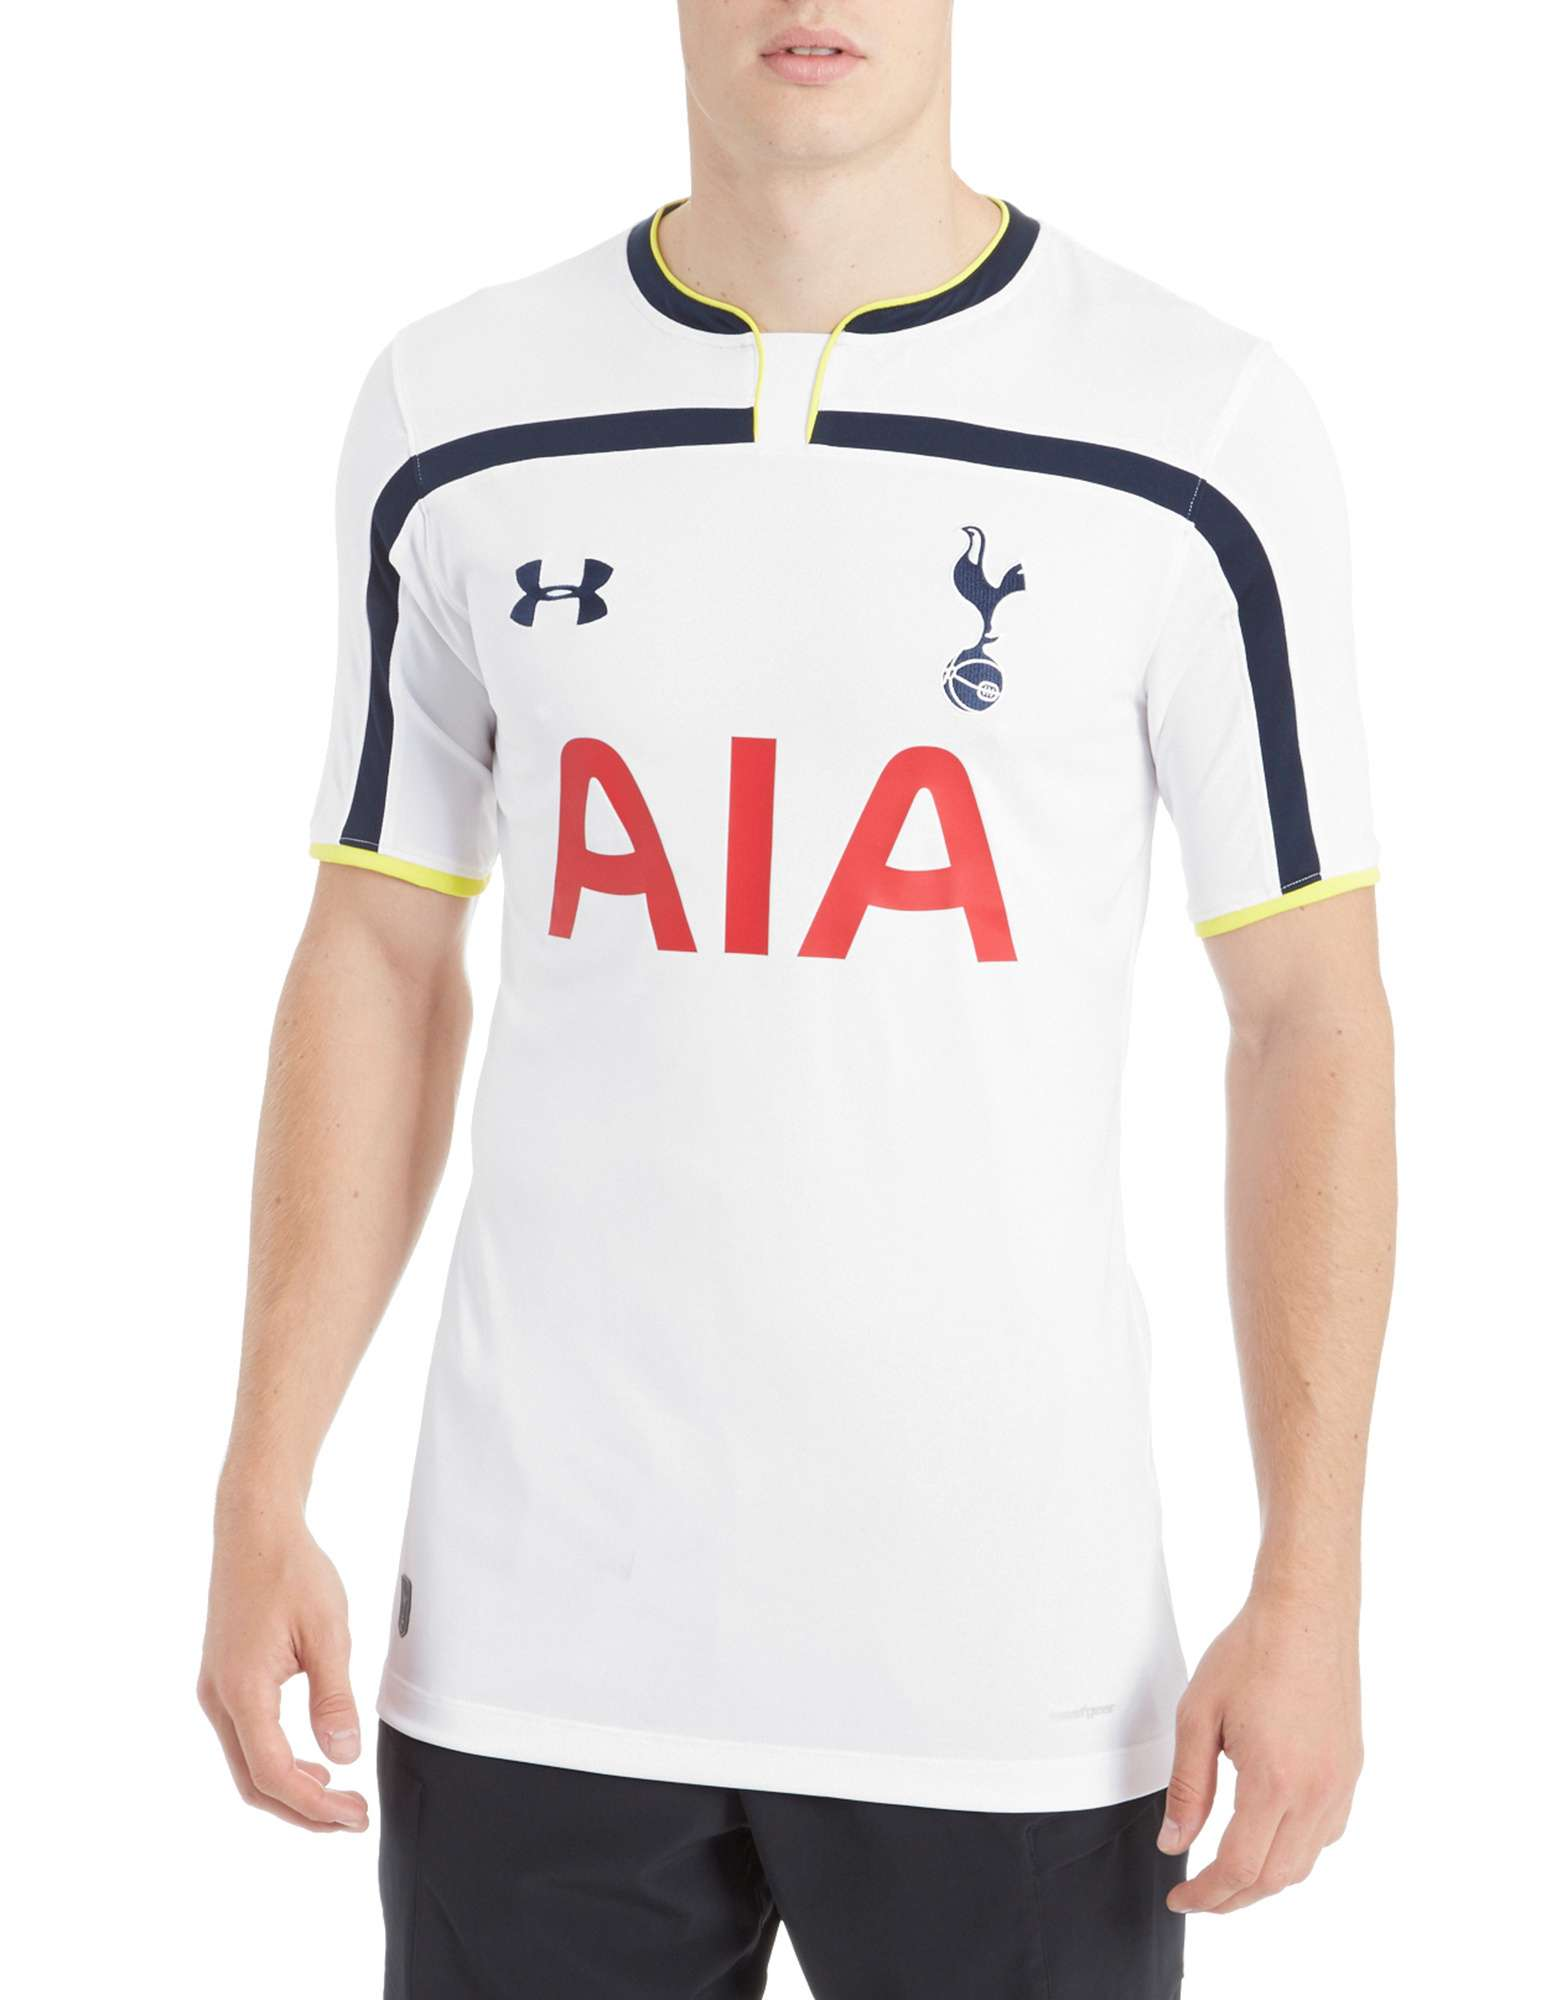 Under Armour Tottenham Hotspur 2014 Home Shirt